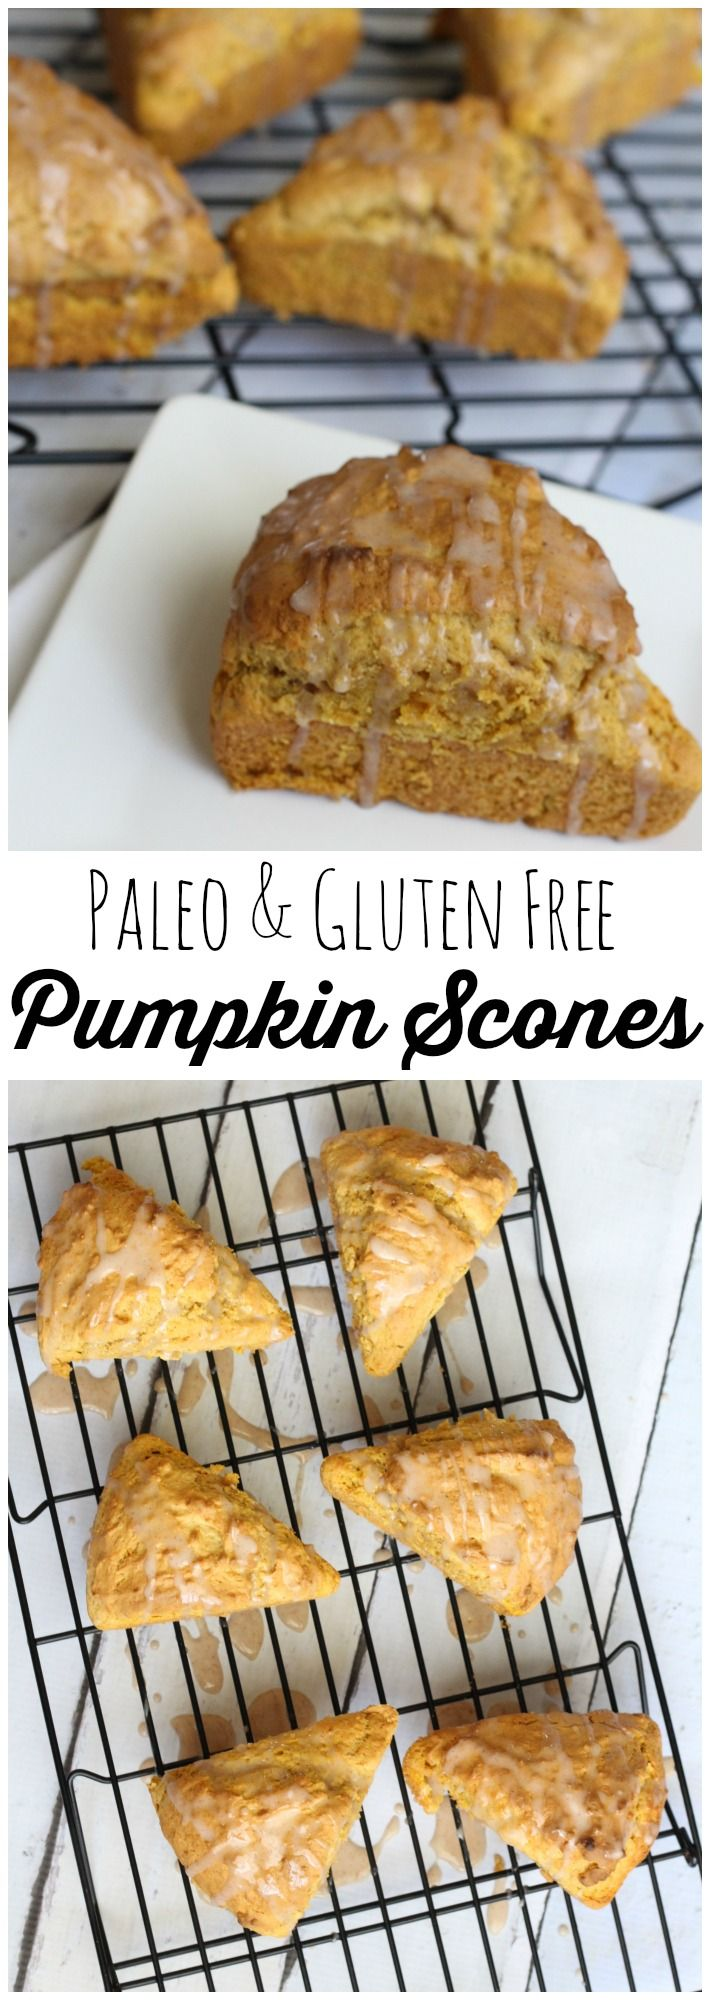 This paleo grain free pumpkin scone recipe is a family favorite. I also share my original and gluten free recipes.